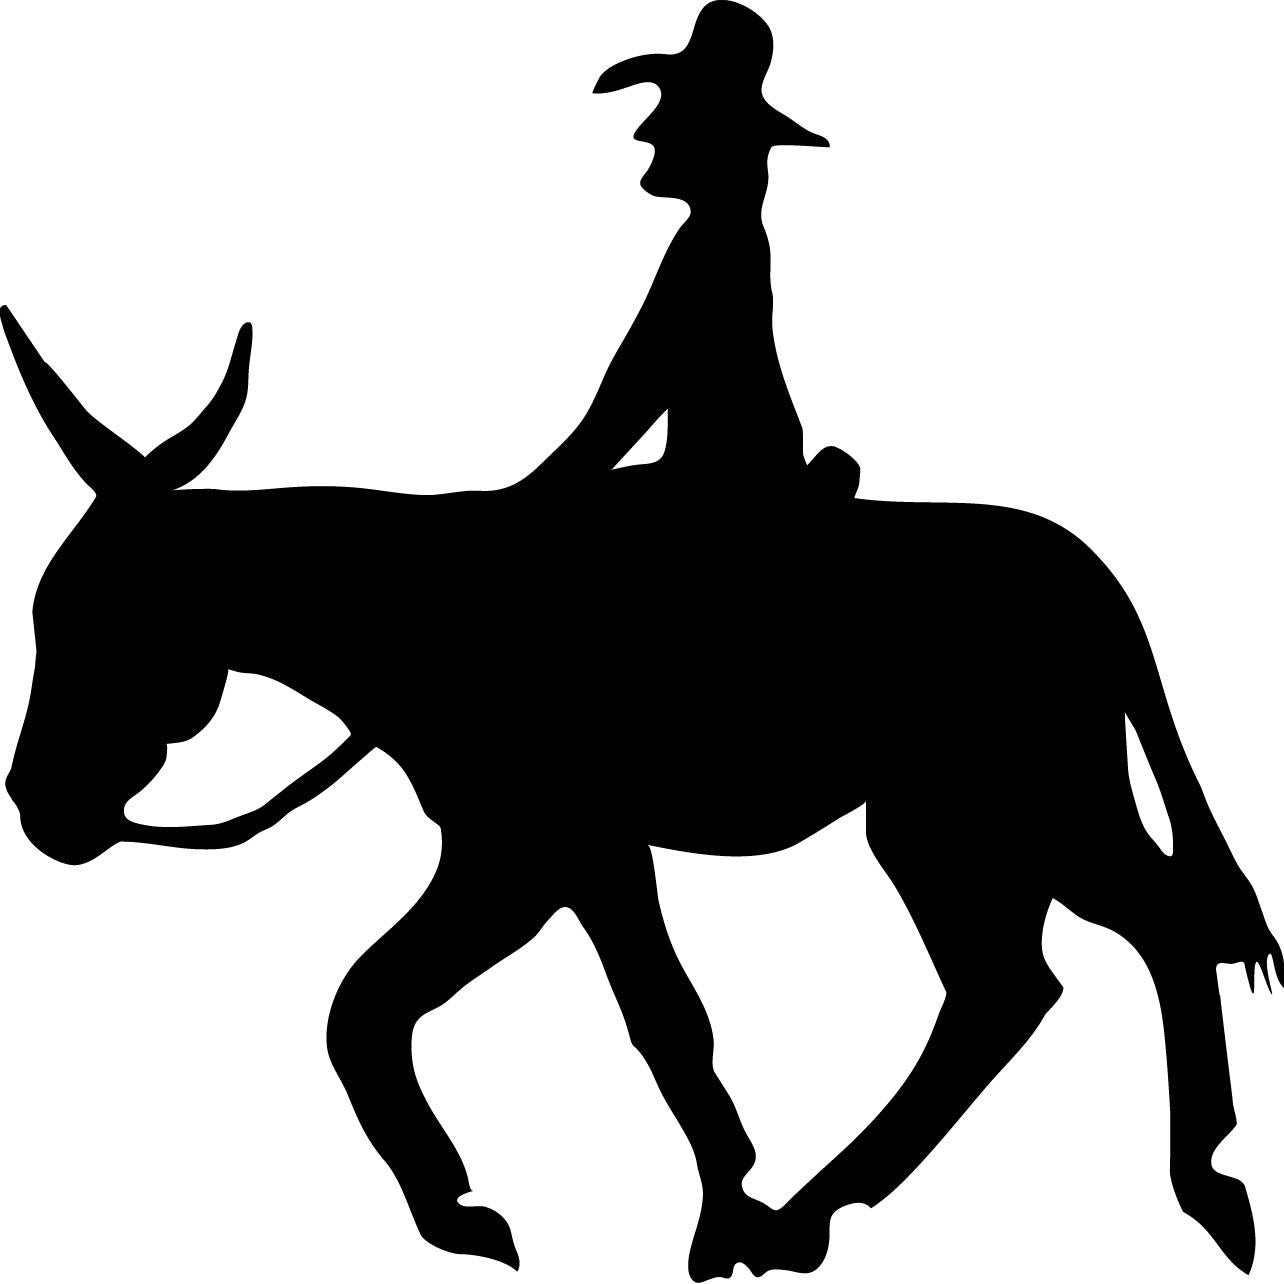 Decal - Donkey Riding